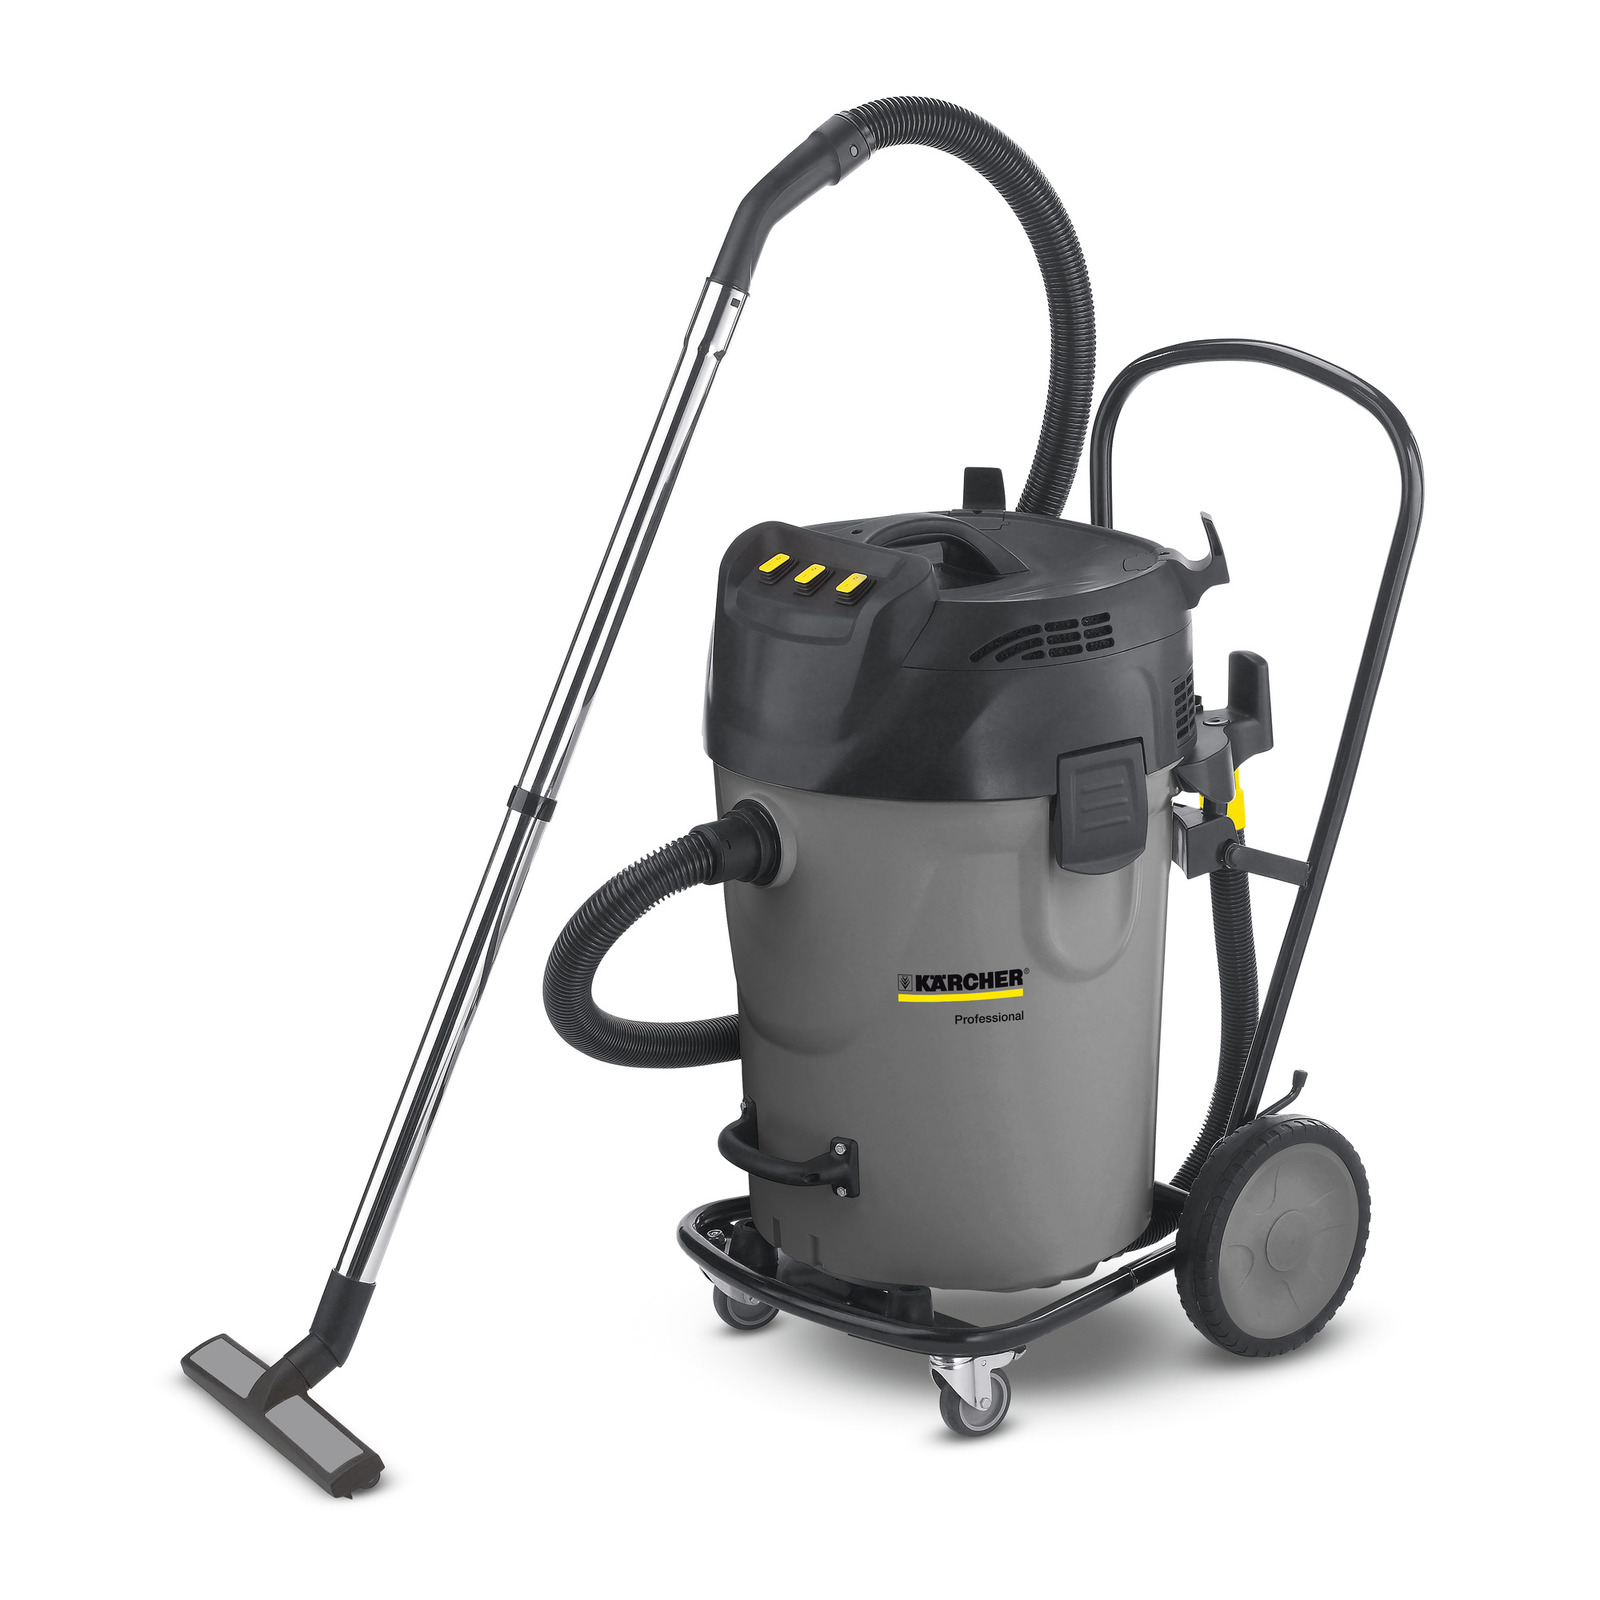 wet and dry vacuum cleaner nt 70 3 tc k rcher uk. Black Bedroom Furniture Sets. Home Design Ideas